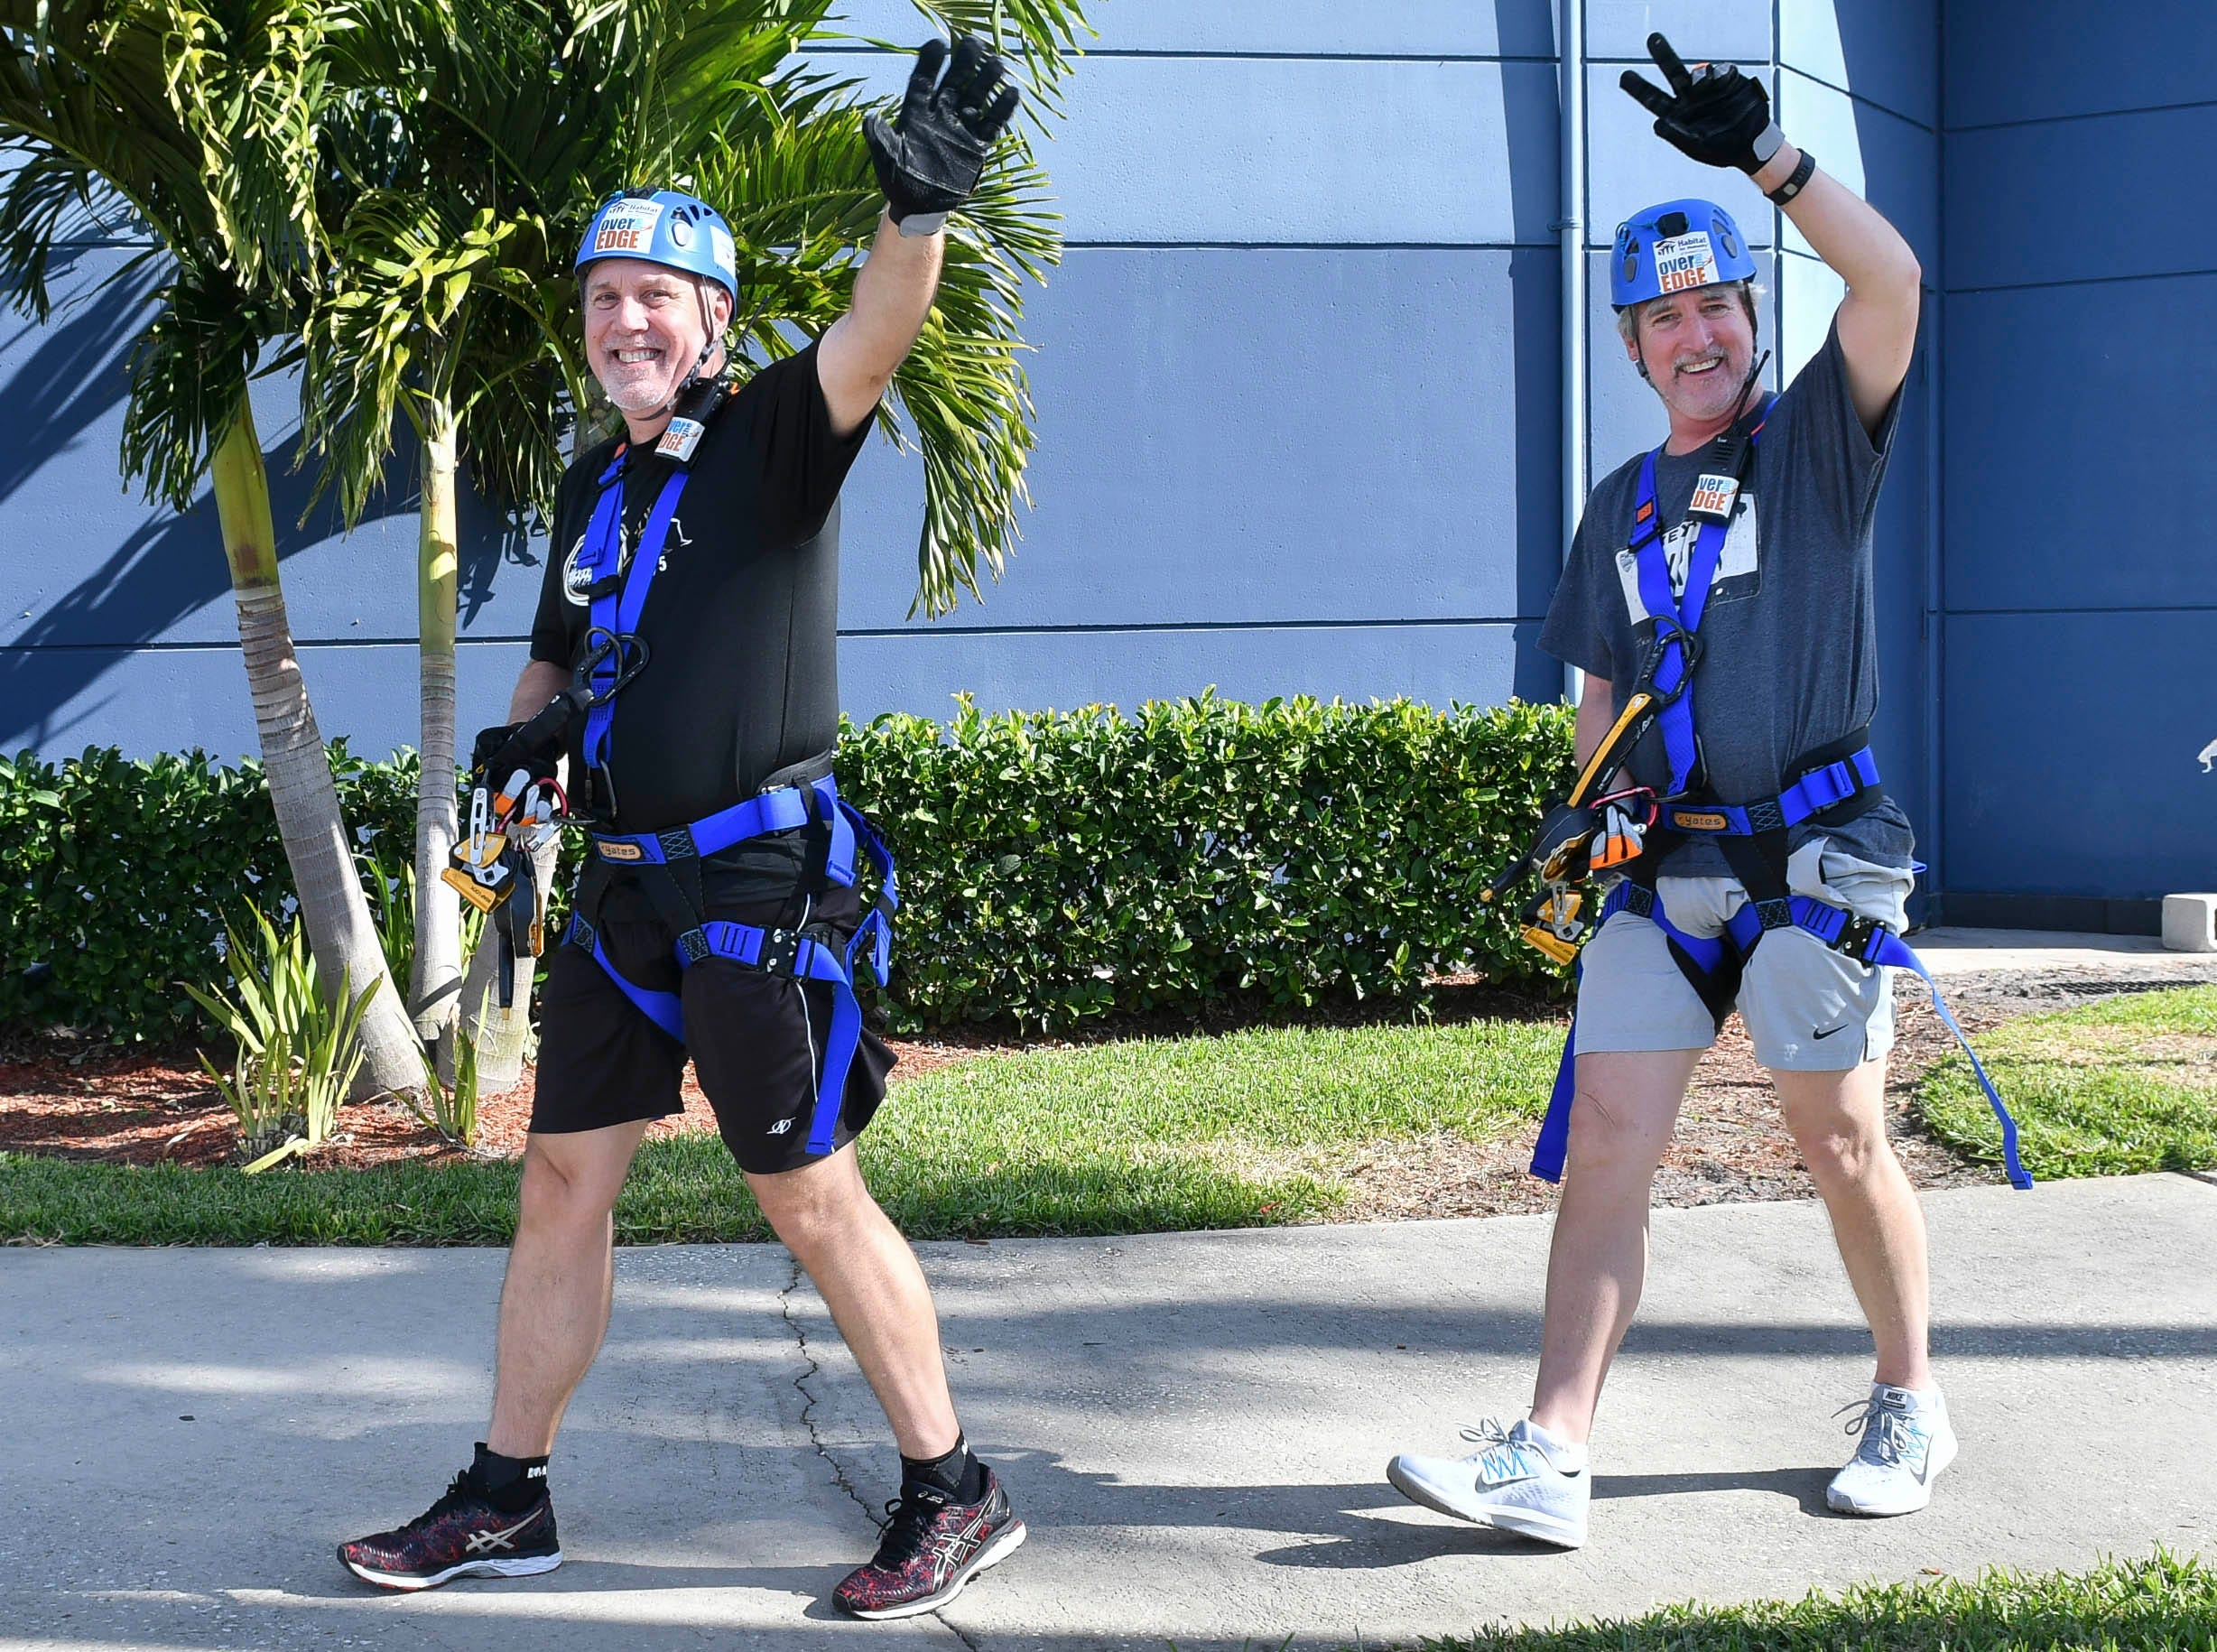 Rob and Scott Raines wave to onlookers after participating in the Over the Edge fundraiser at the Melbourne Rialto Hilton on Saturday morning. Over the Edge is a fundraiser for Habitat Humanity of Brevard, an organization that helps low-income families buy affordable houses. Teams and individuals raised money for the chance to rappel eight stories down the Hilton.